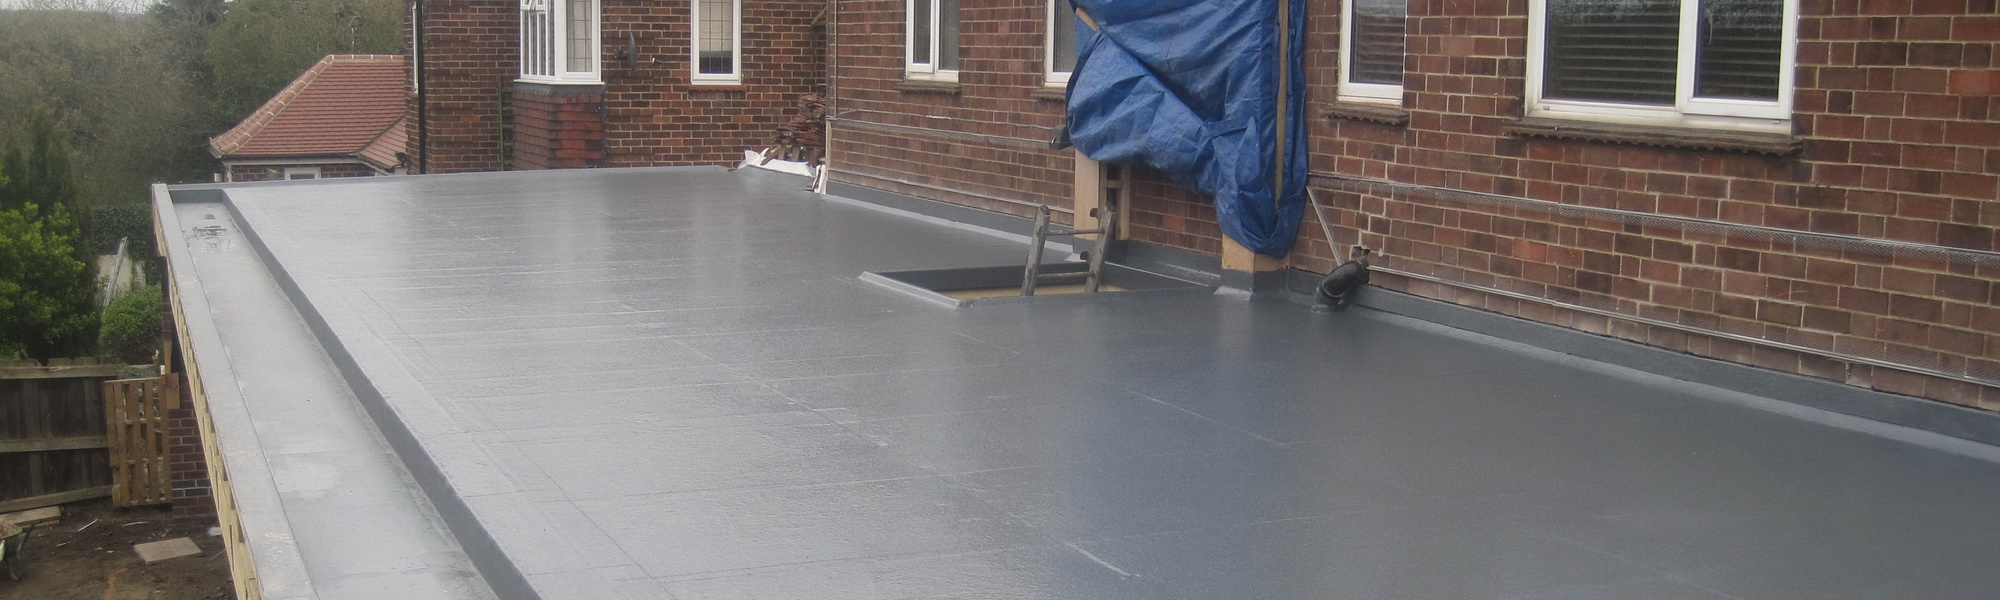 Domestic & Commercial Roofing Services